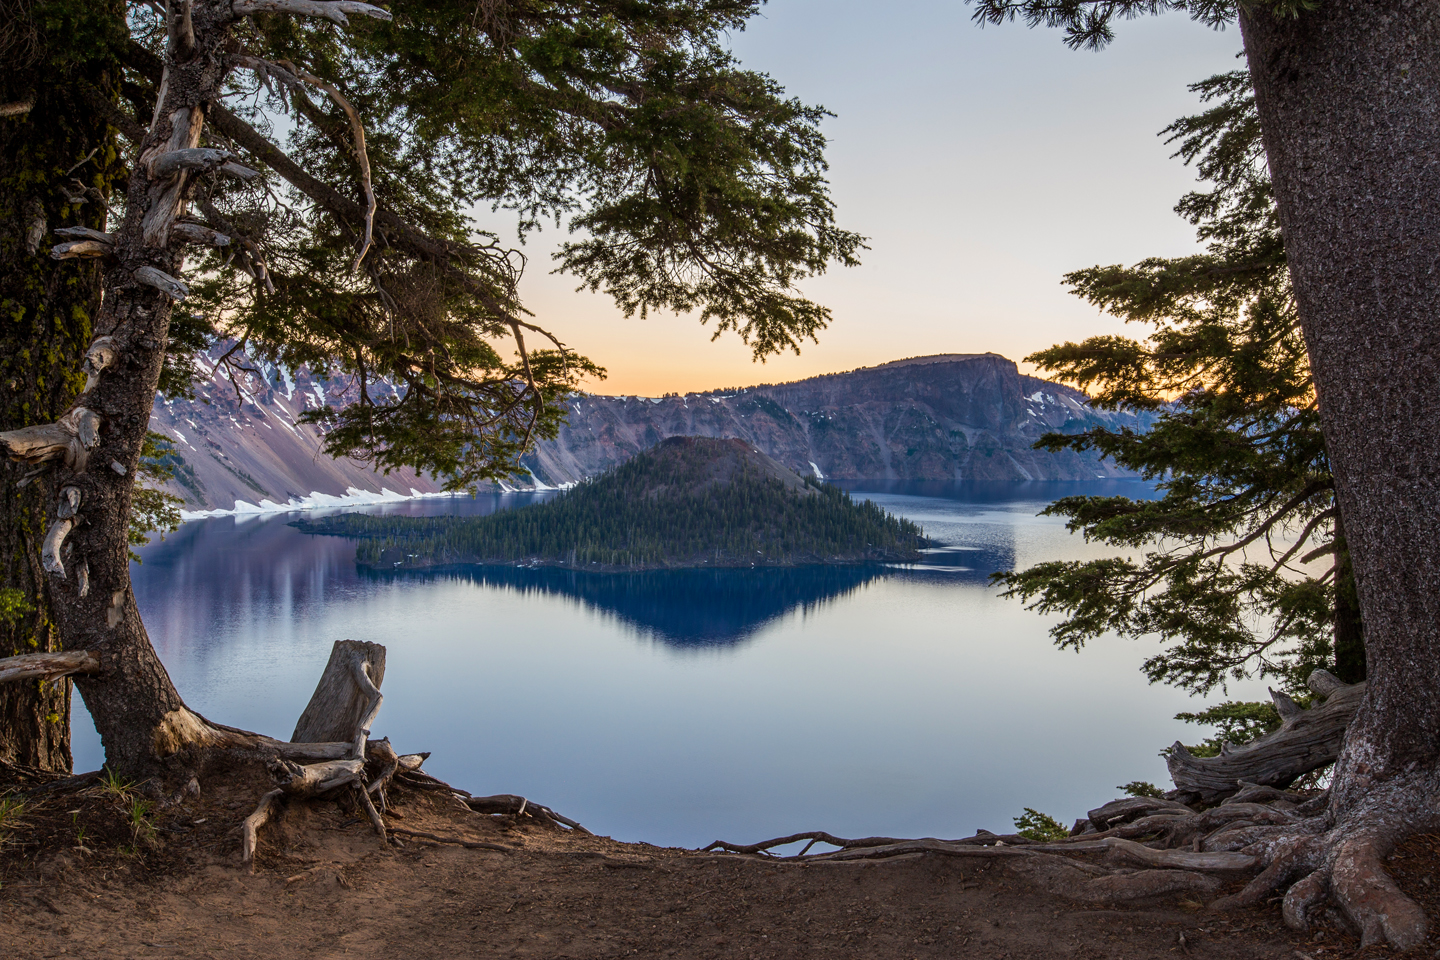 crater-lake-sunrise-wizard-island-trees